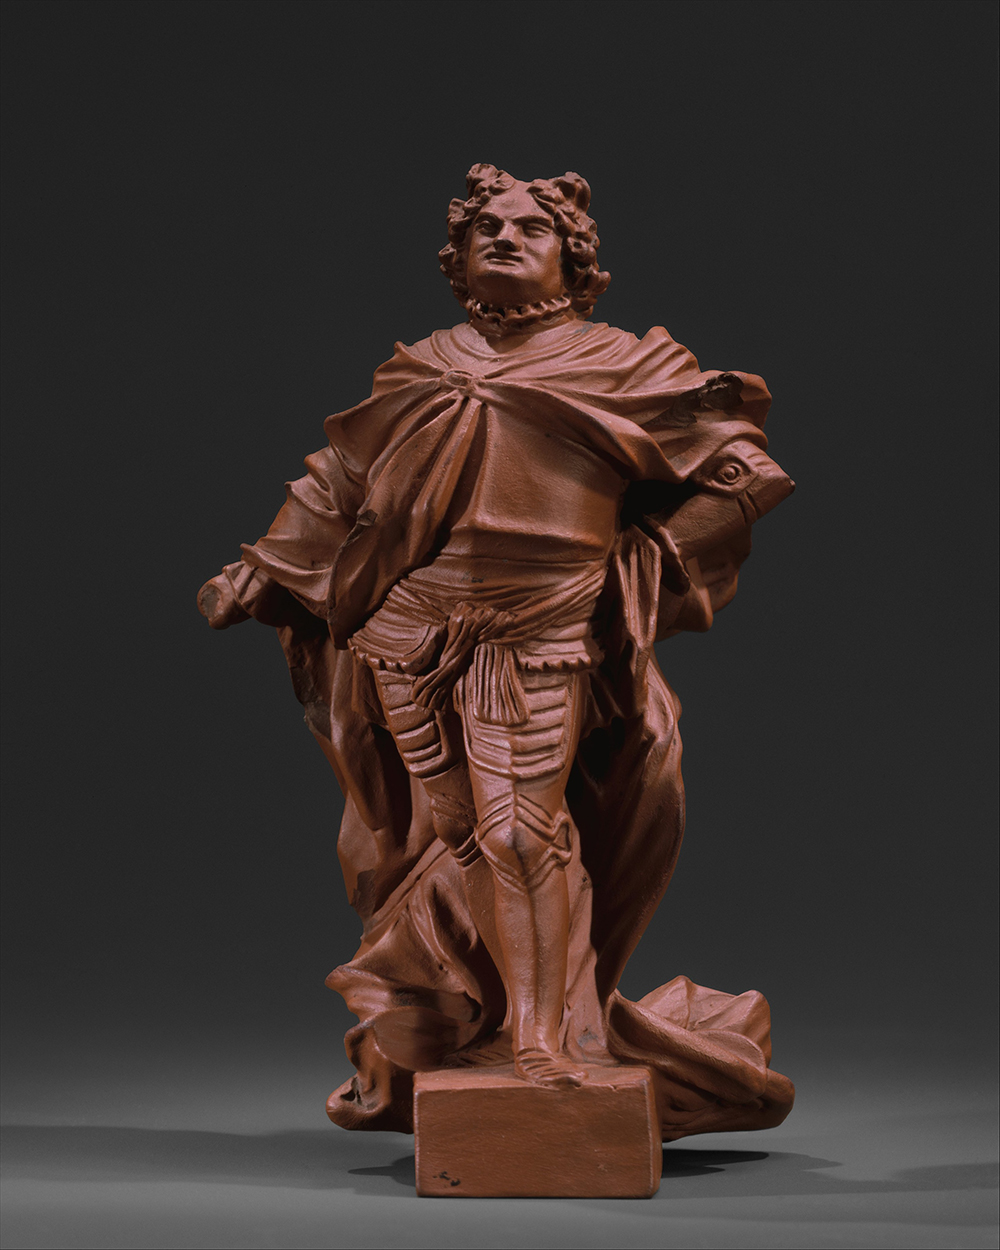 Augustus the Strong, by the Meissen Manufactory, c. 1713.